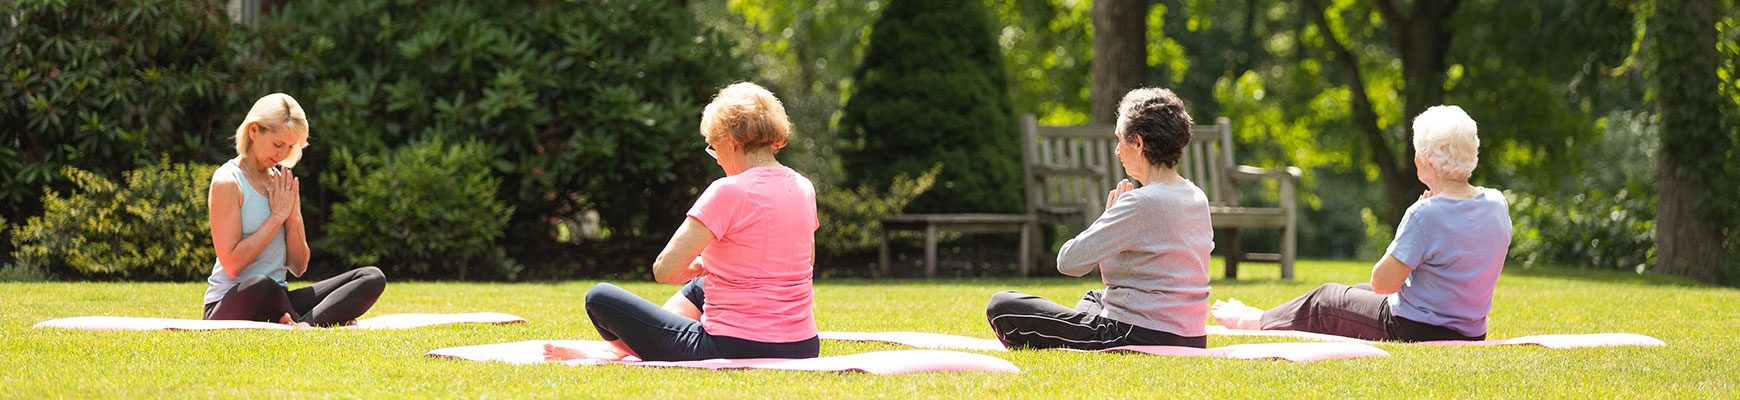 A yoga for seniors class being held outdoors